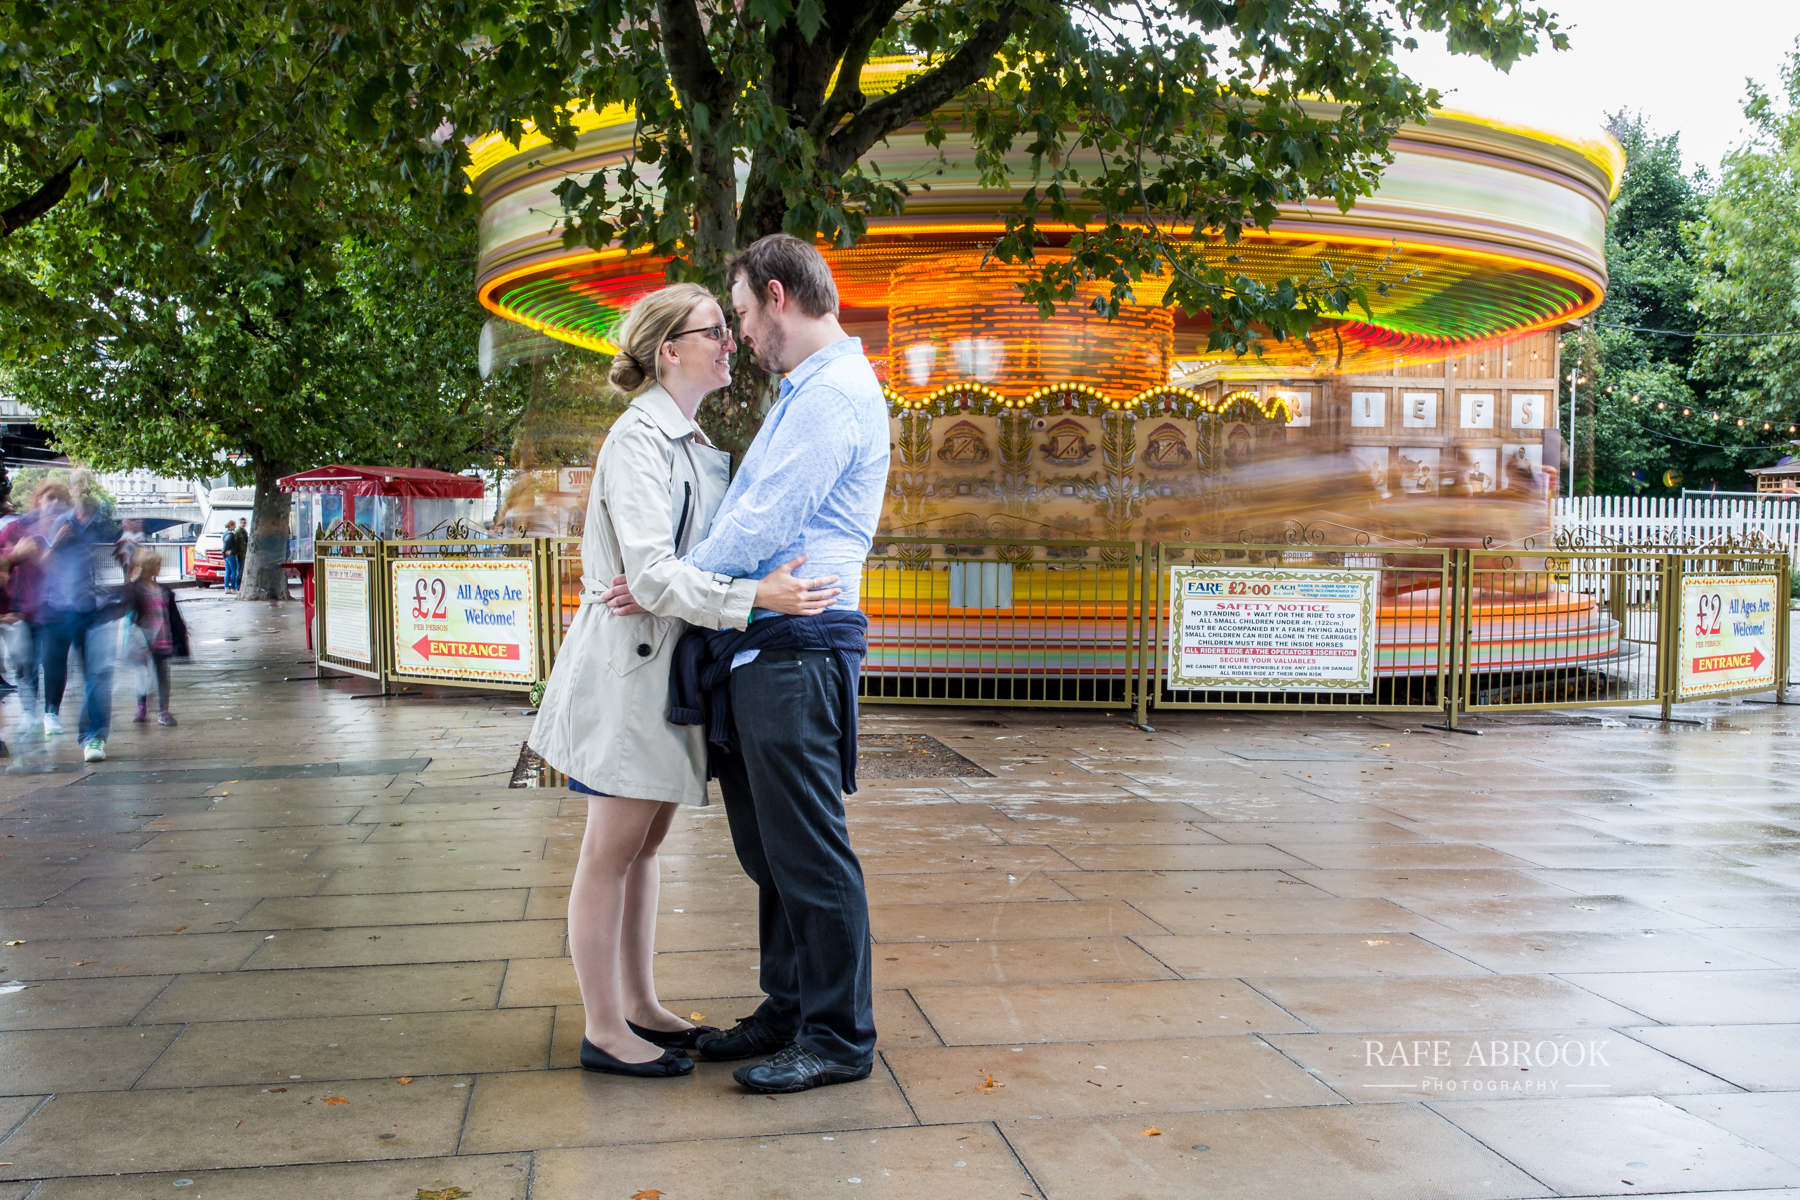 wedding photographer hertfordshire rafe abrook photography london city southbank engagement shoot-1013.jpg